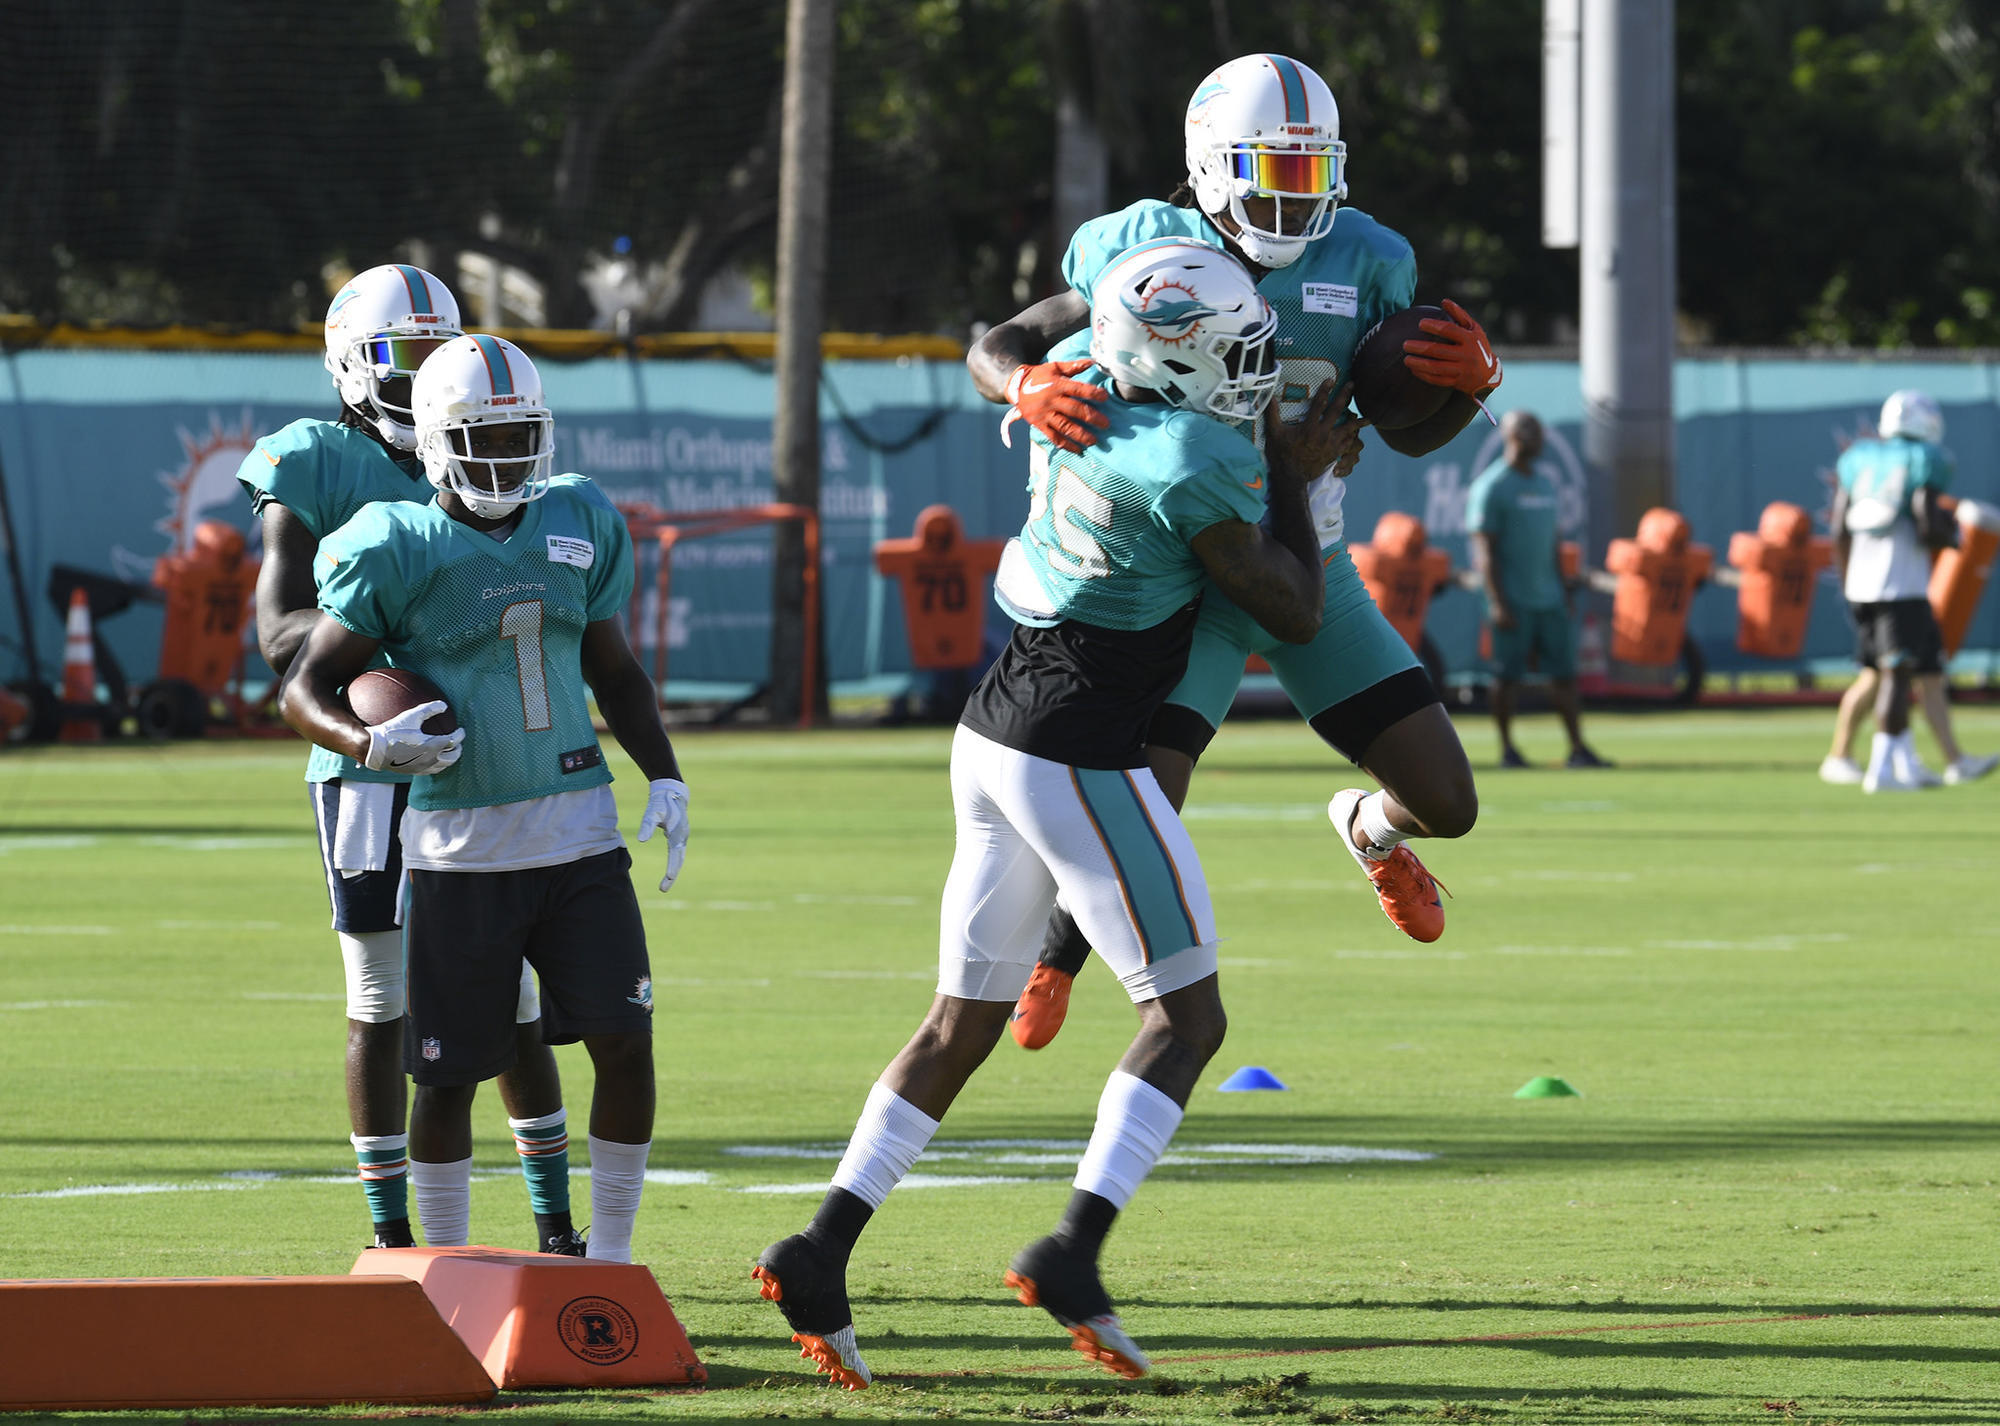 Fl-sp-dolphins-stock-report-20180812